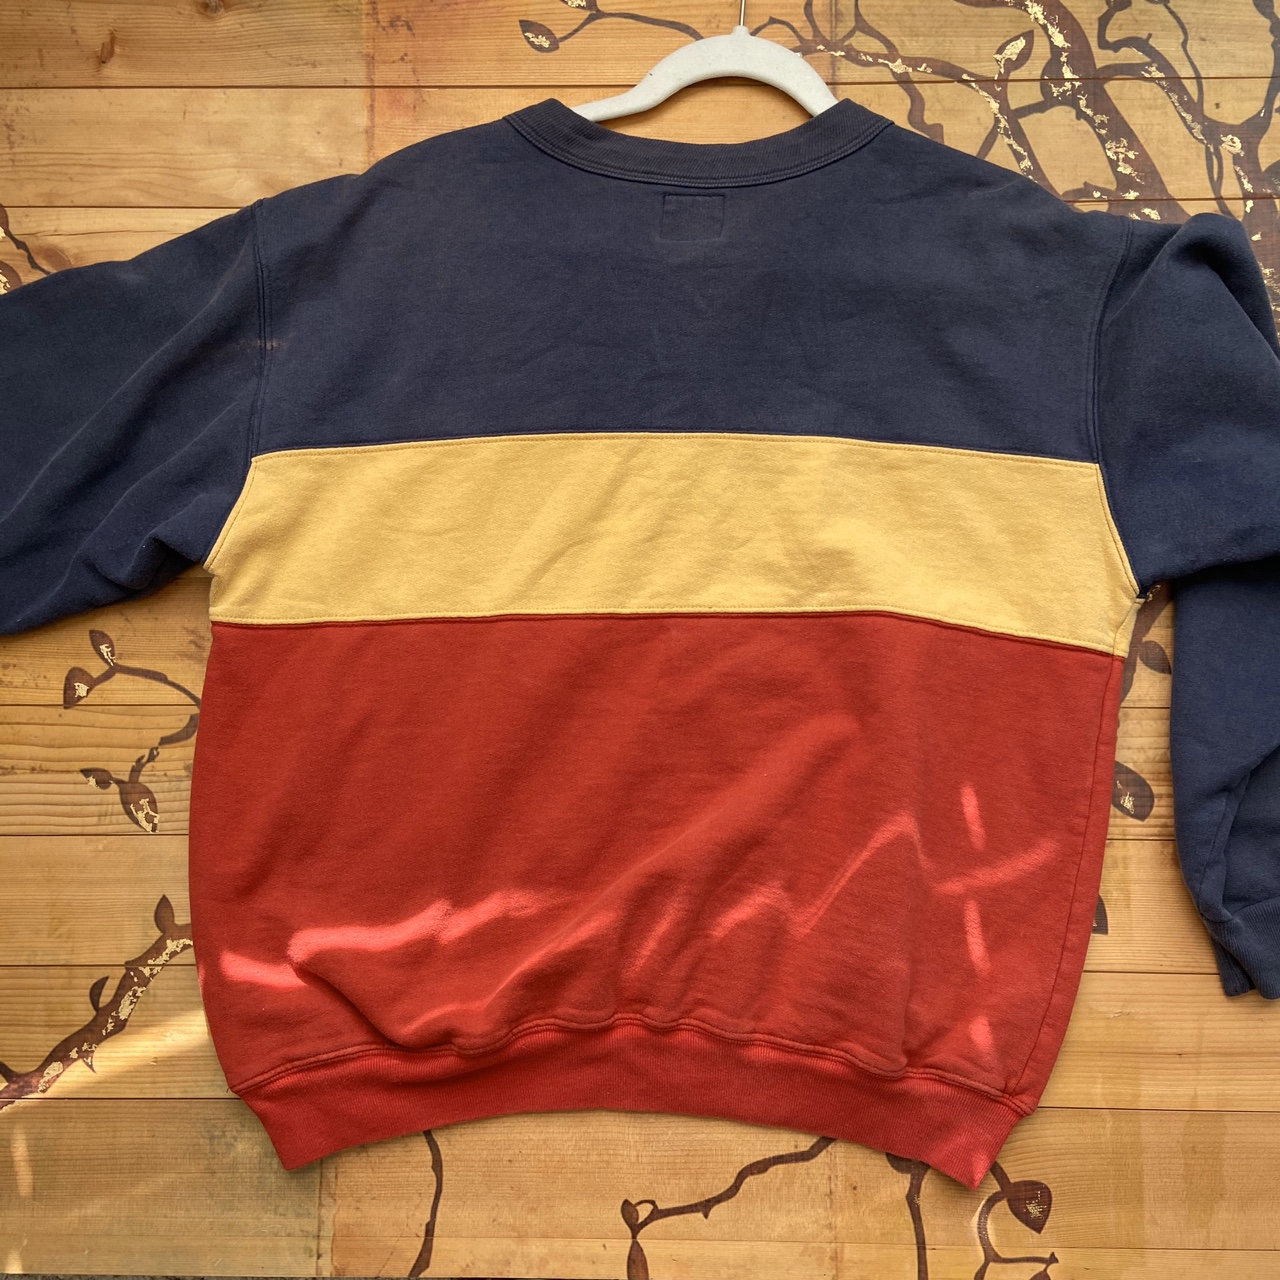 Product Image 4 - Vintage guess sweatshirt Cool color blocked